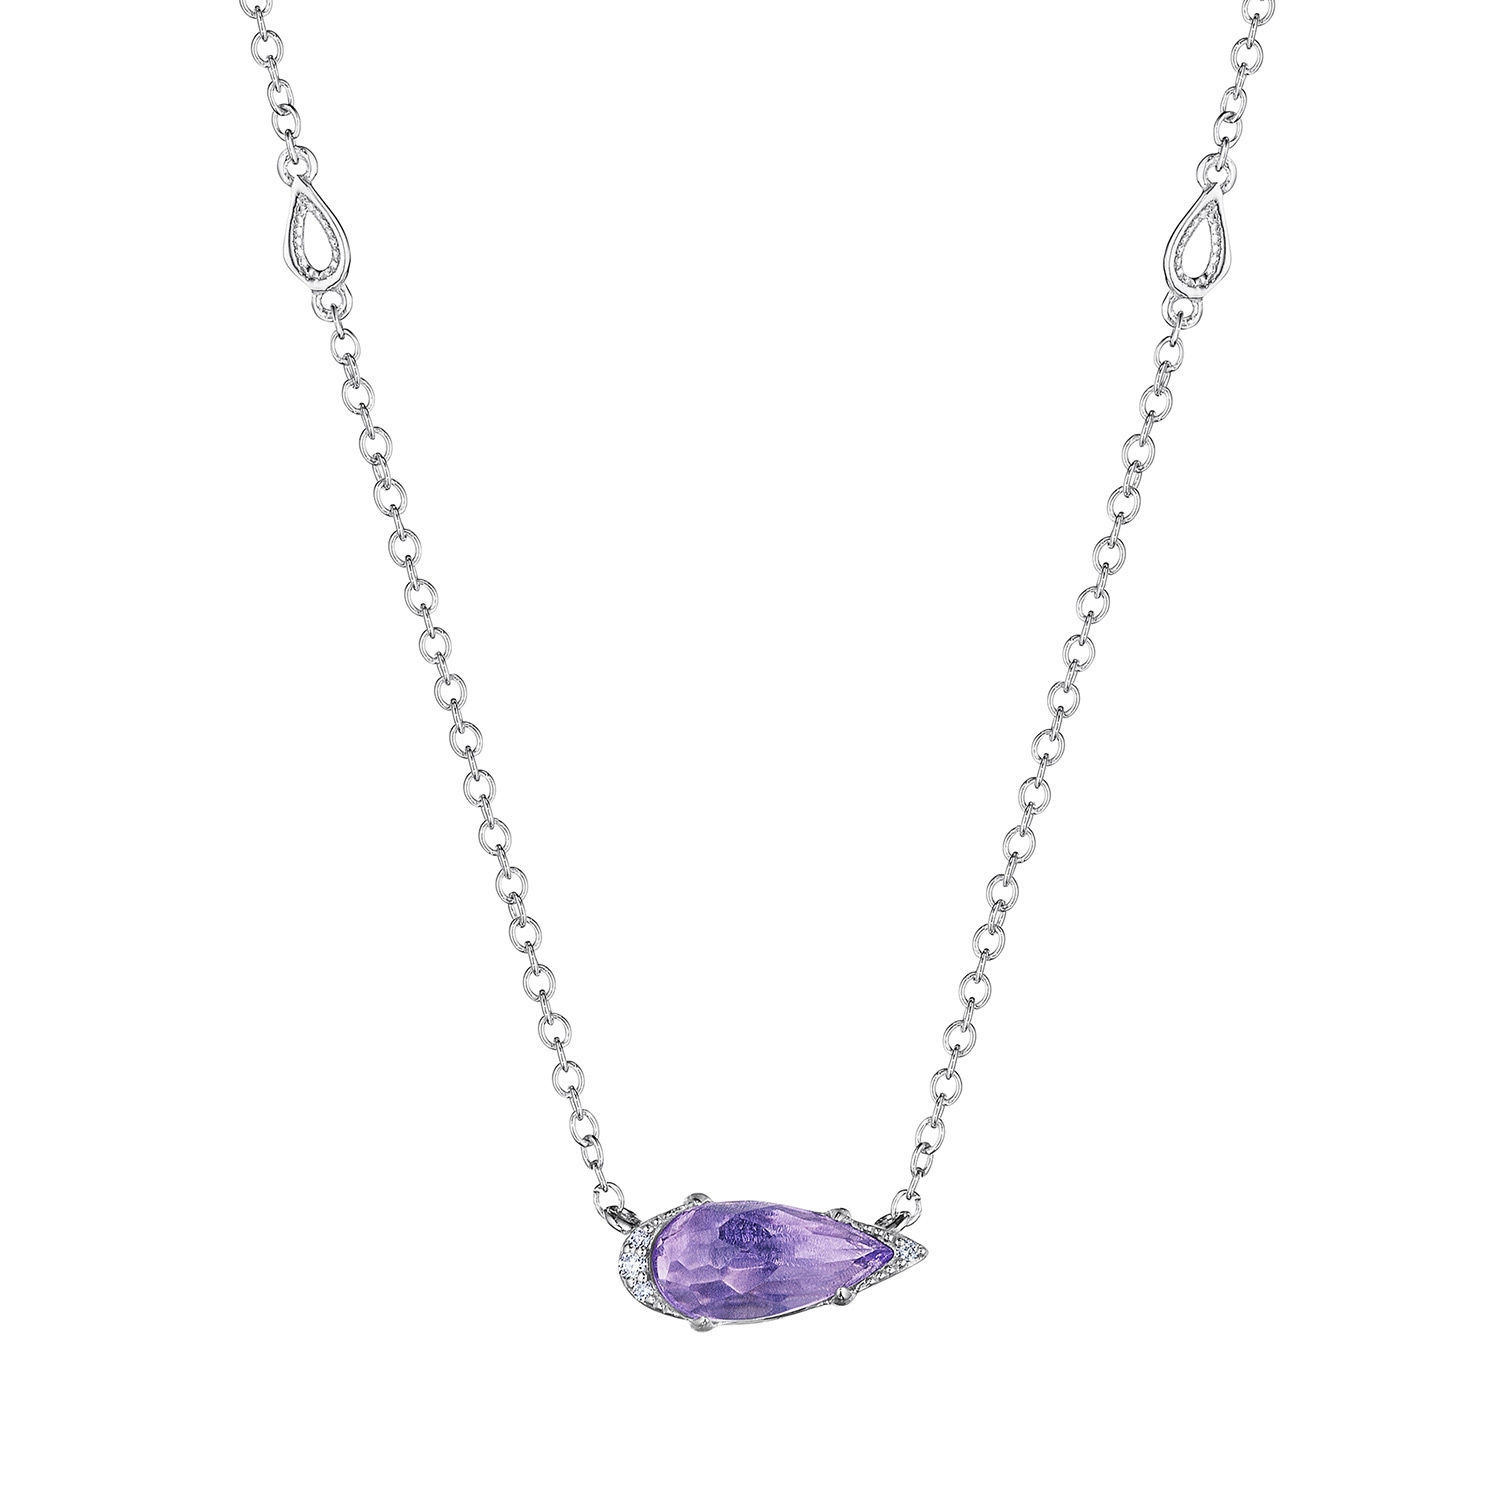 Tacori SN23501 Solitaire Pear-Shaped Gem Necklace with Amethyst